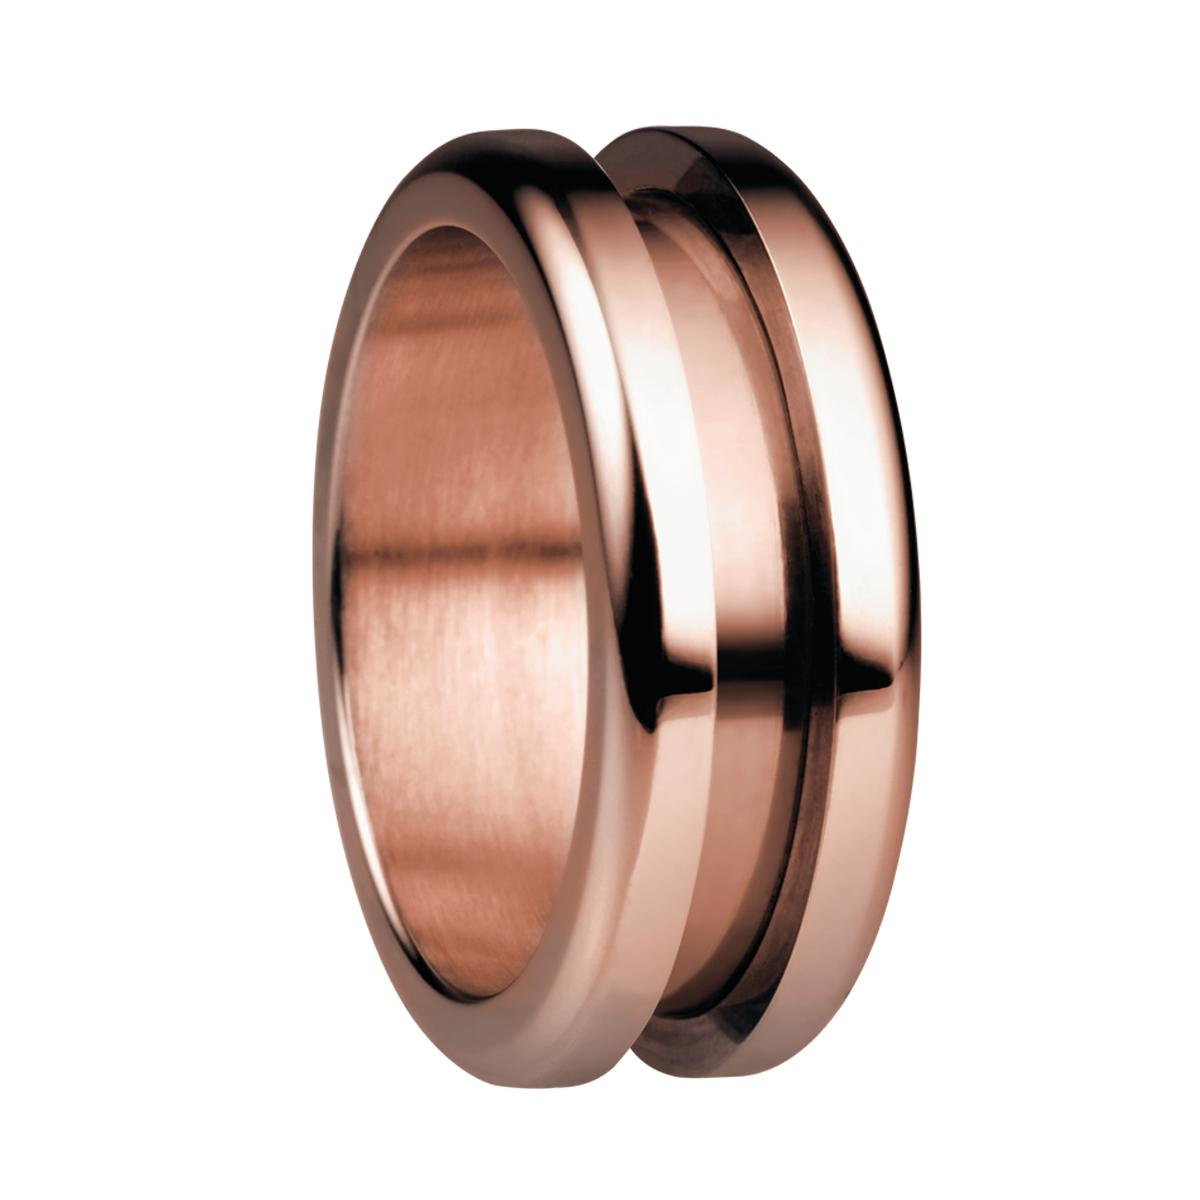 Bering Outer Ring 5203053 1